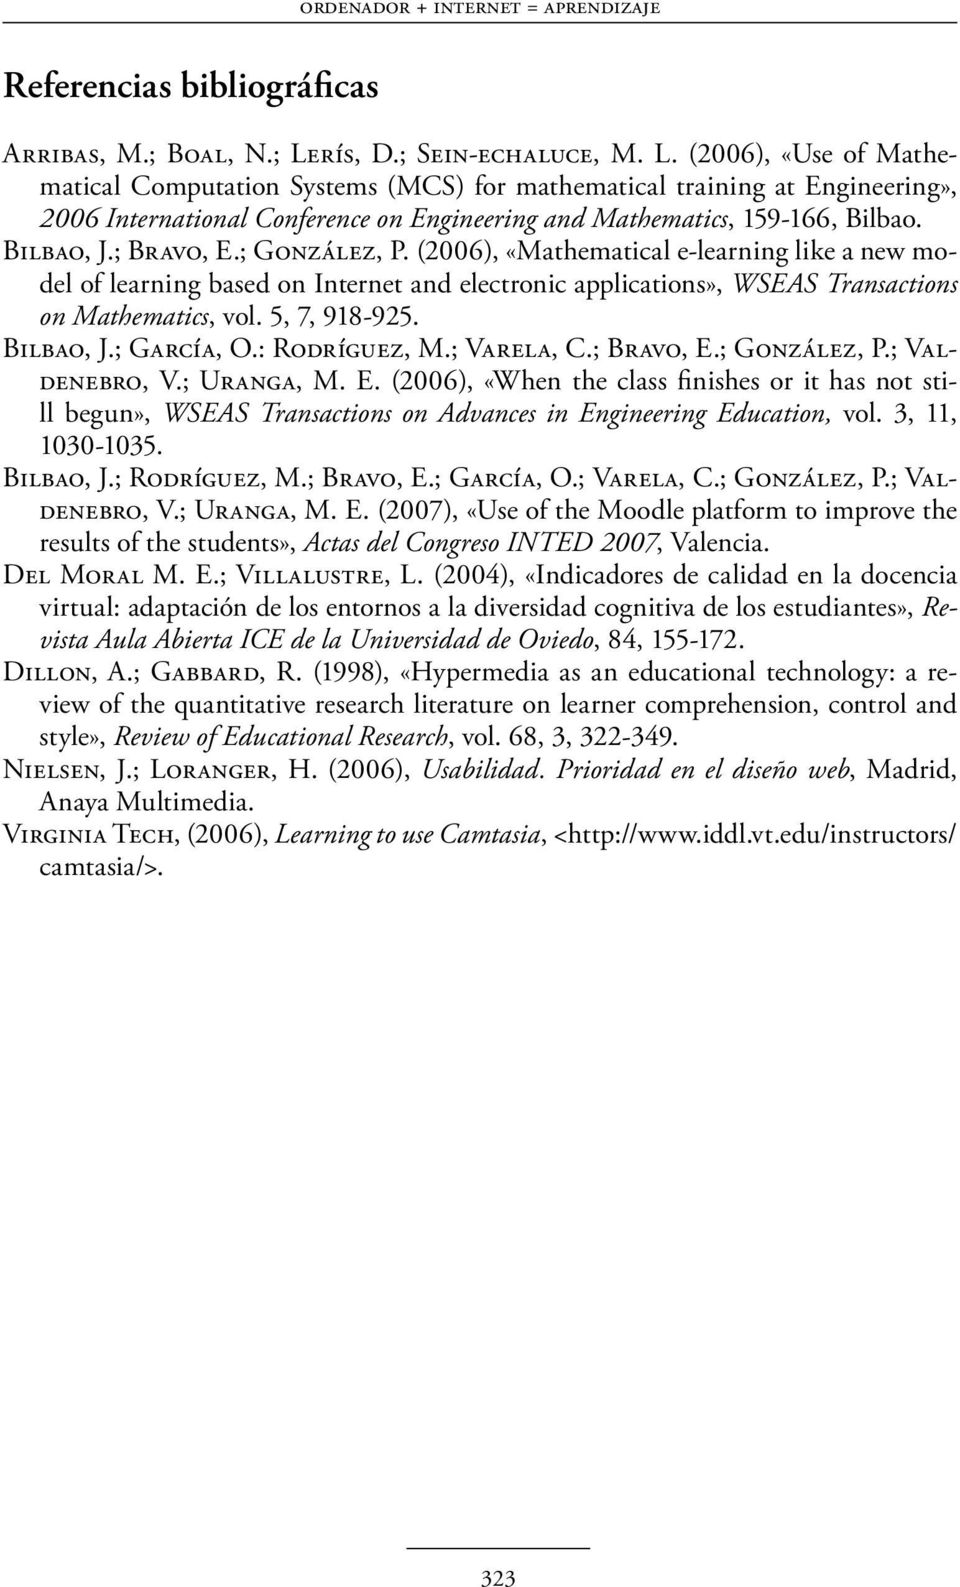 (2006), «Use of Mathematical Computation Systems (MCS) for mathematical training at Engineering», 2006 International Conference on Engineering and Mathematics, 159-166, Bilbao. Bilbao, J.; Bravo, E.